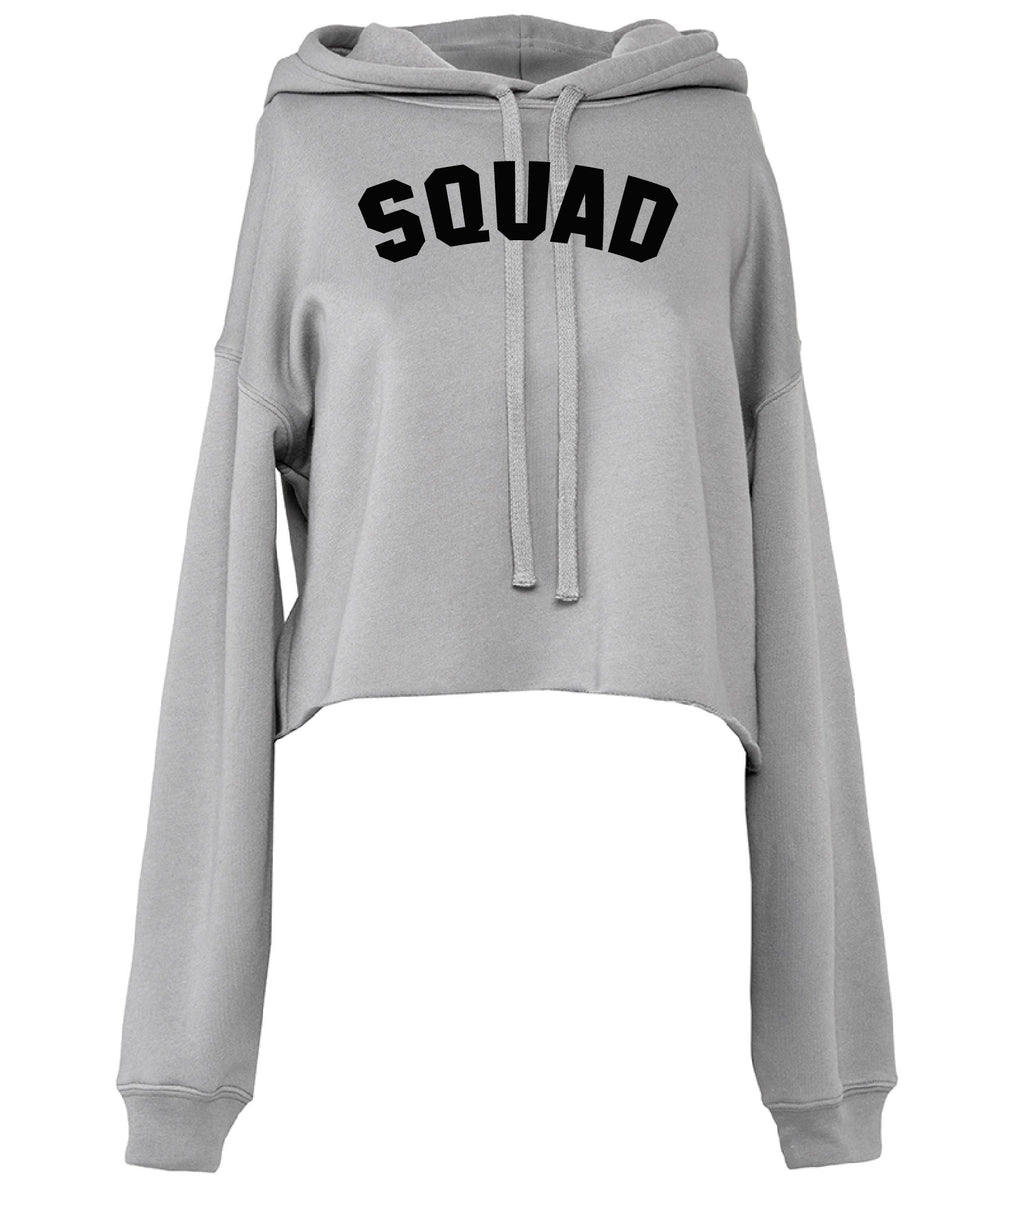 SQUAD Cropped Hoodie - Available on a Grey hoodie